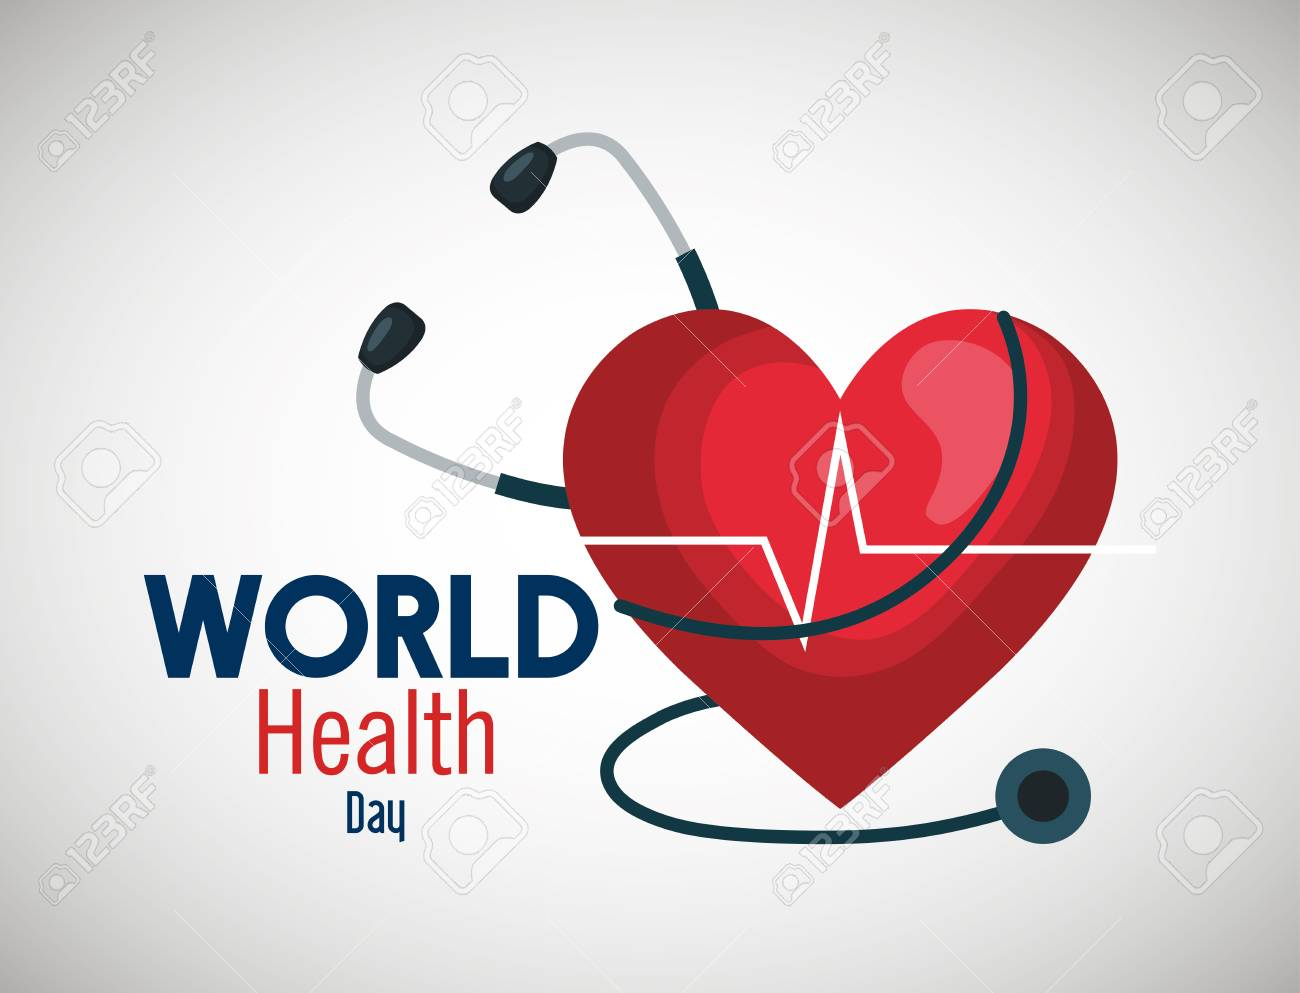 stethoscope with heartbeat to world health day vector illustration - 119757007